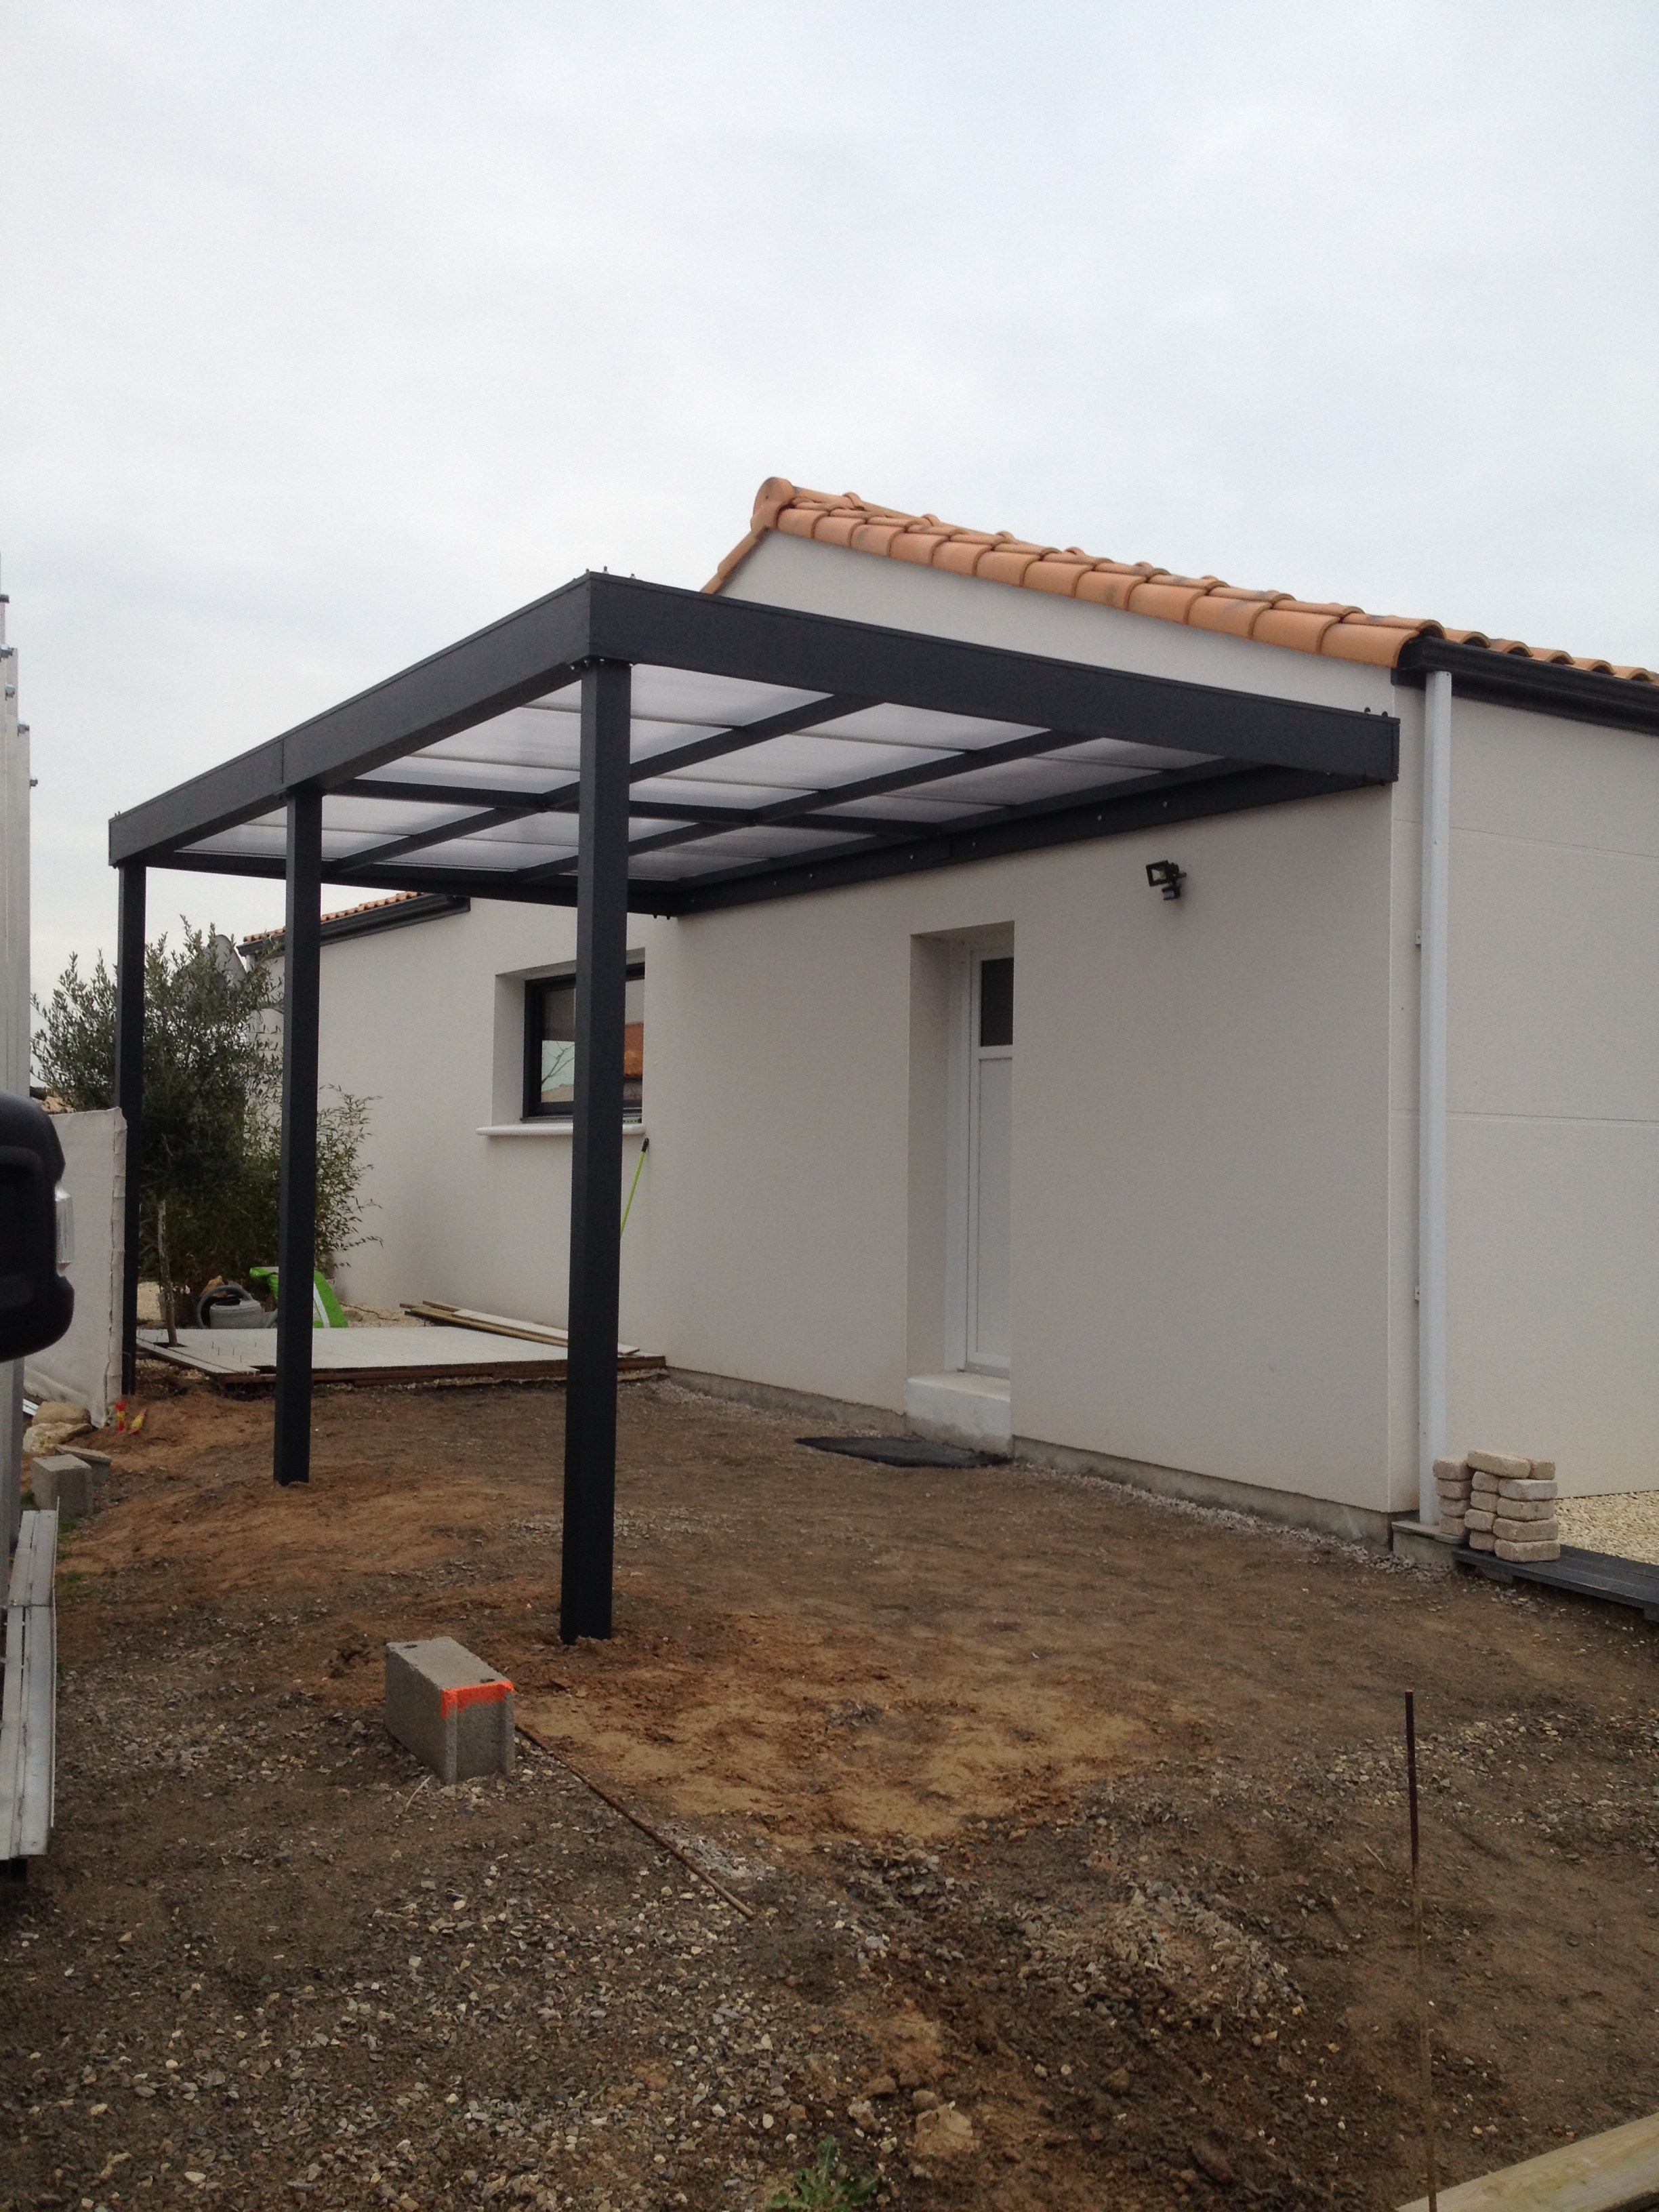 Carport aluminium idealconnect for Construire son garage soi meme